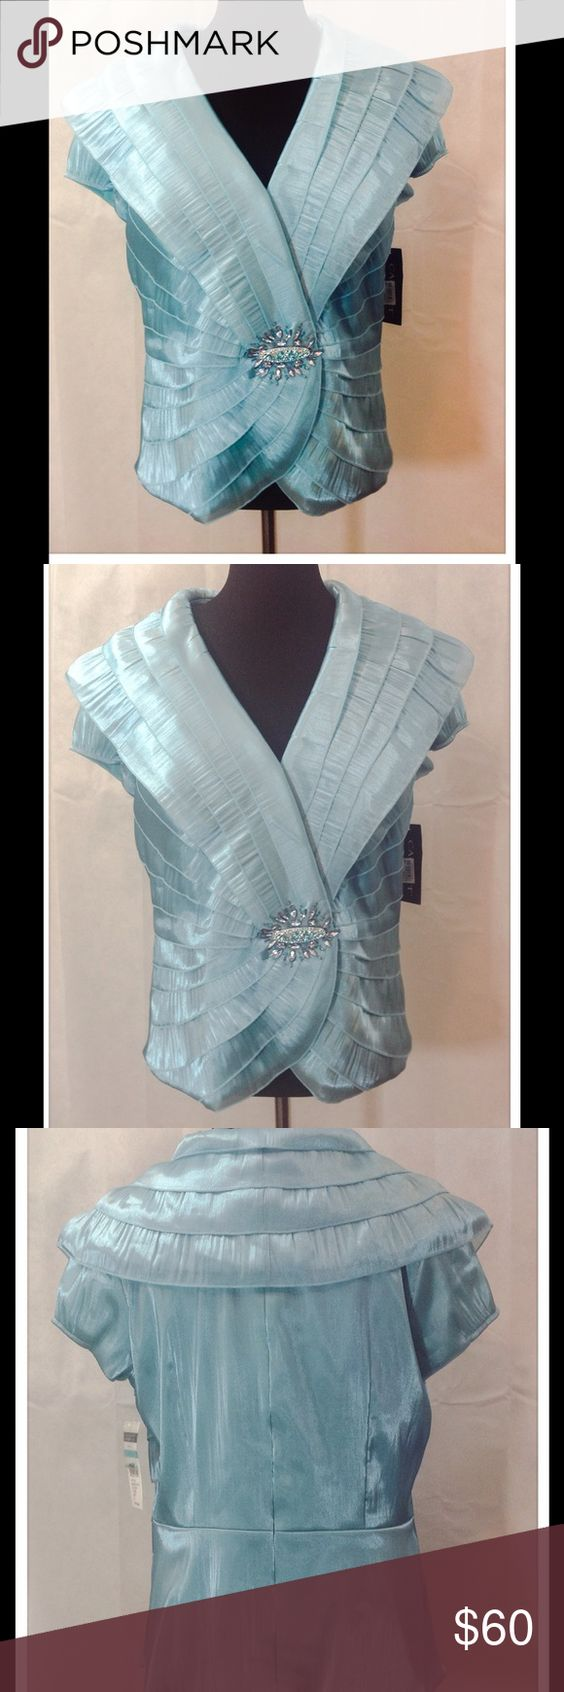 NWT Turquoise Cachet Blouse You'll be ready for the holiday festivities with this beautiful blouse. Beautifully appliqués in front and zIppered back. Pair it with dressy slacks or a skirt, and you're ready!  Dry Clean. Cachet Tops Blouses